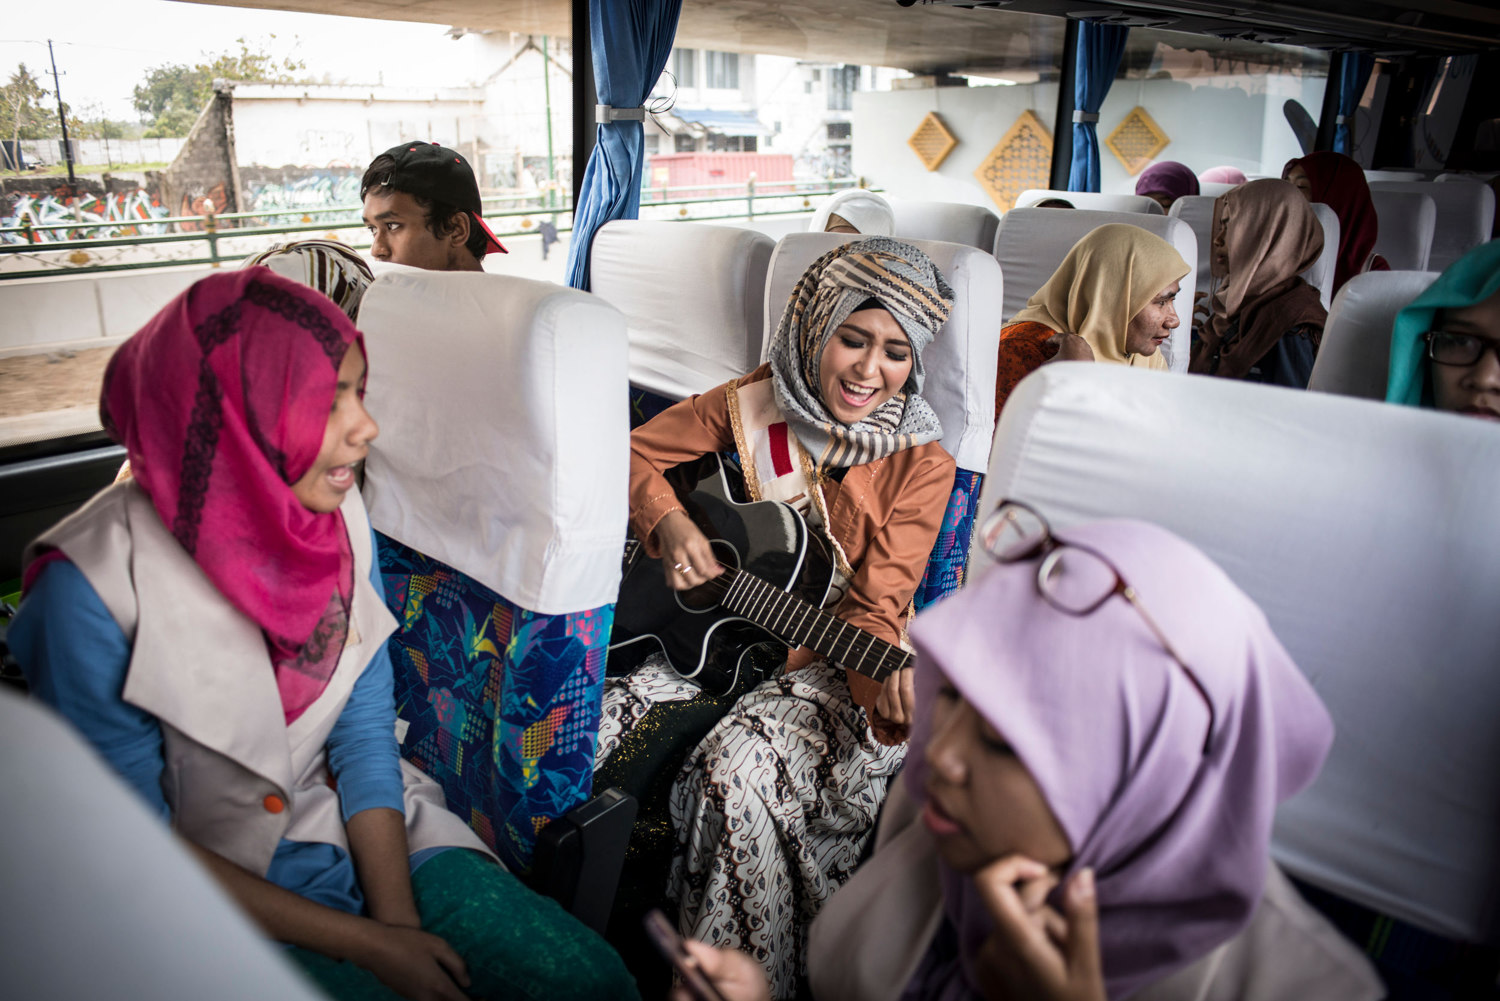 Indonesian finalist Elis Sholihah leads a sing-along on the bus between events.